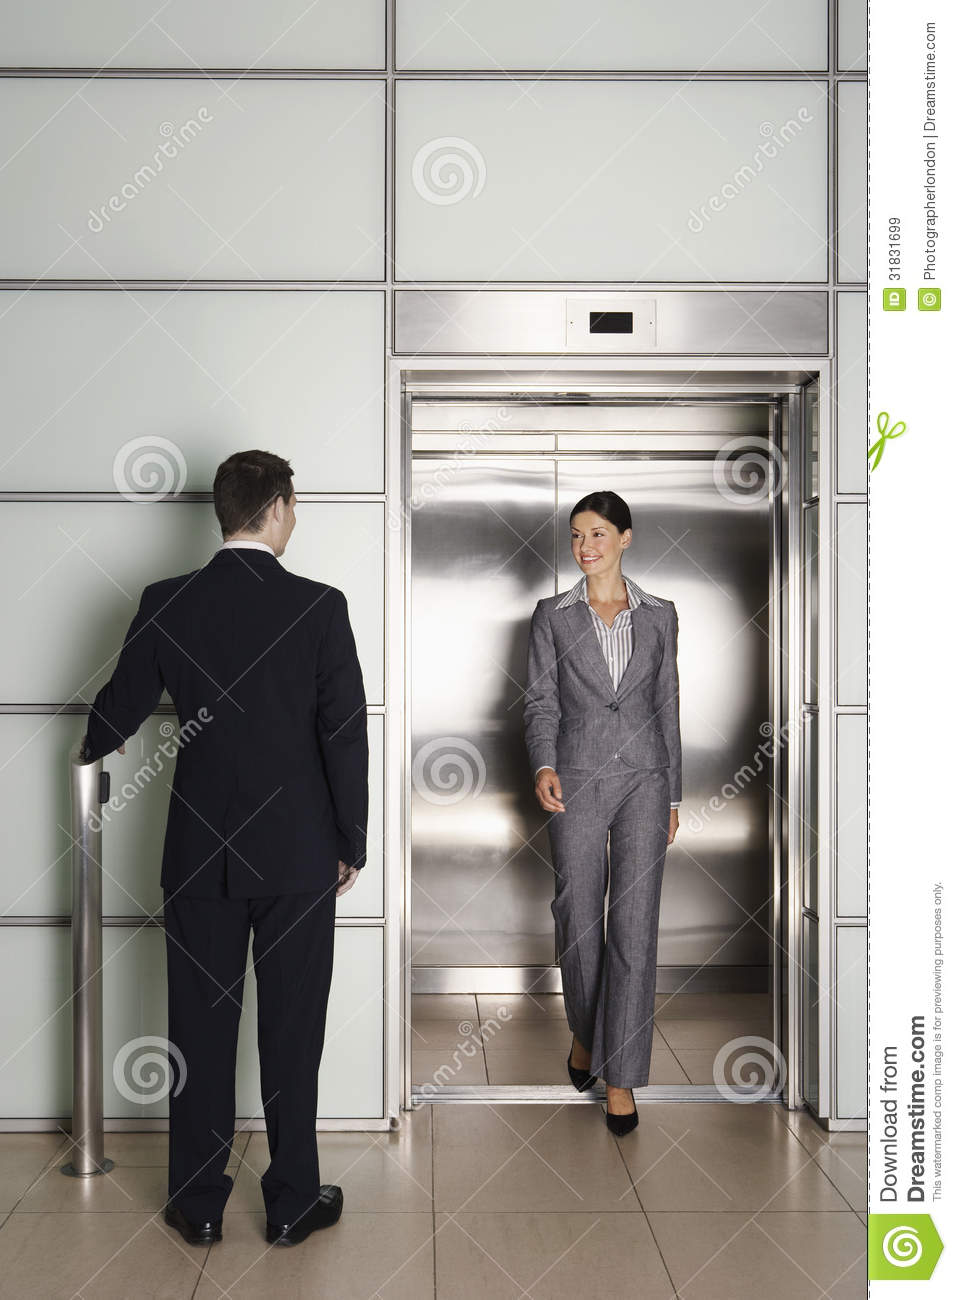 Businessman Looking At Female Colleague Exiting Elevator Royalty ...